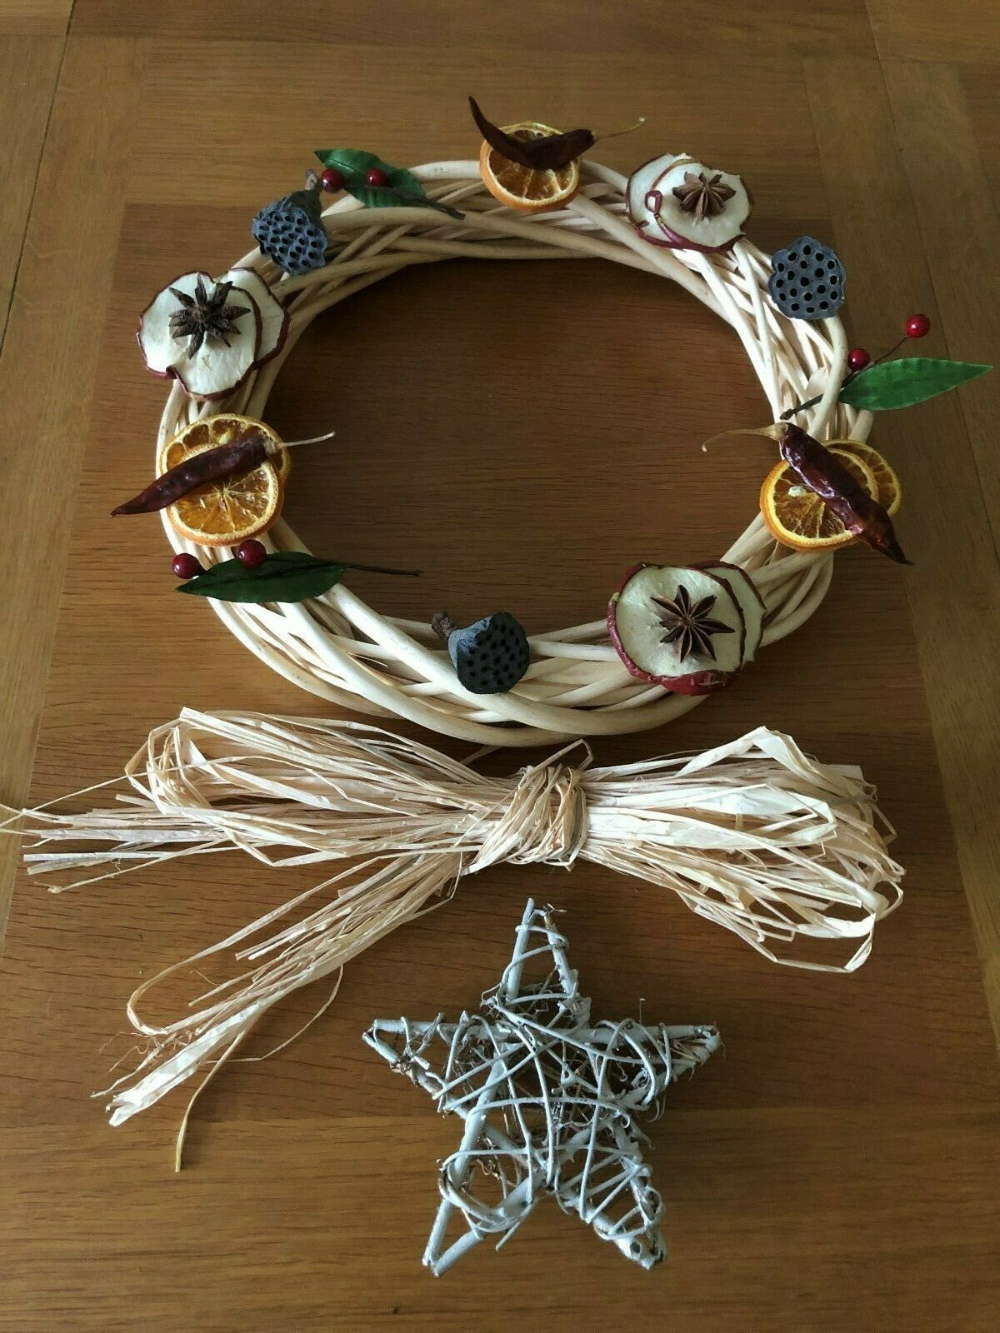 Details about DIY Christmas Willow Wreath Making Kit (No 4